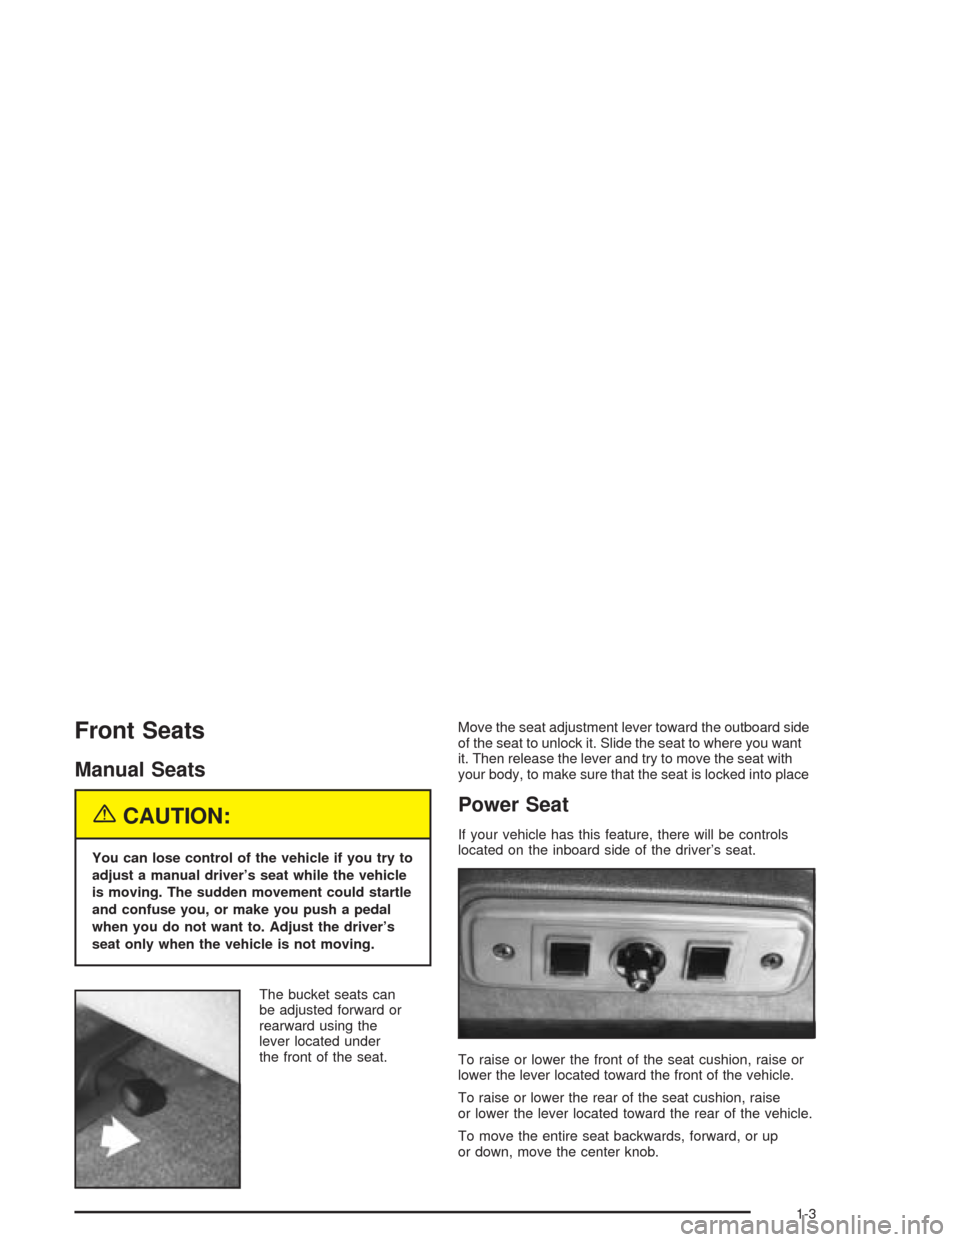 CHEVROLET ASTRO CARGO VAN 2004 2.G Owners Manual, Page 9